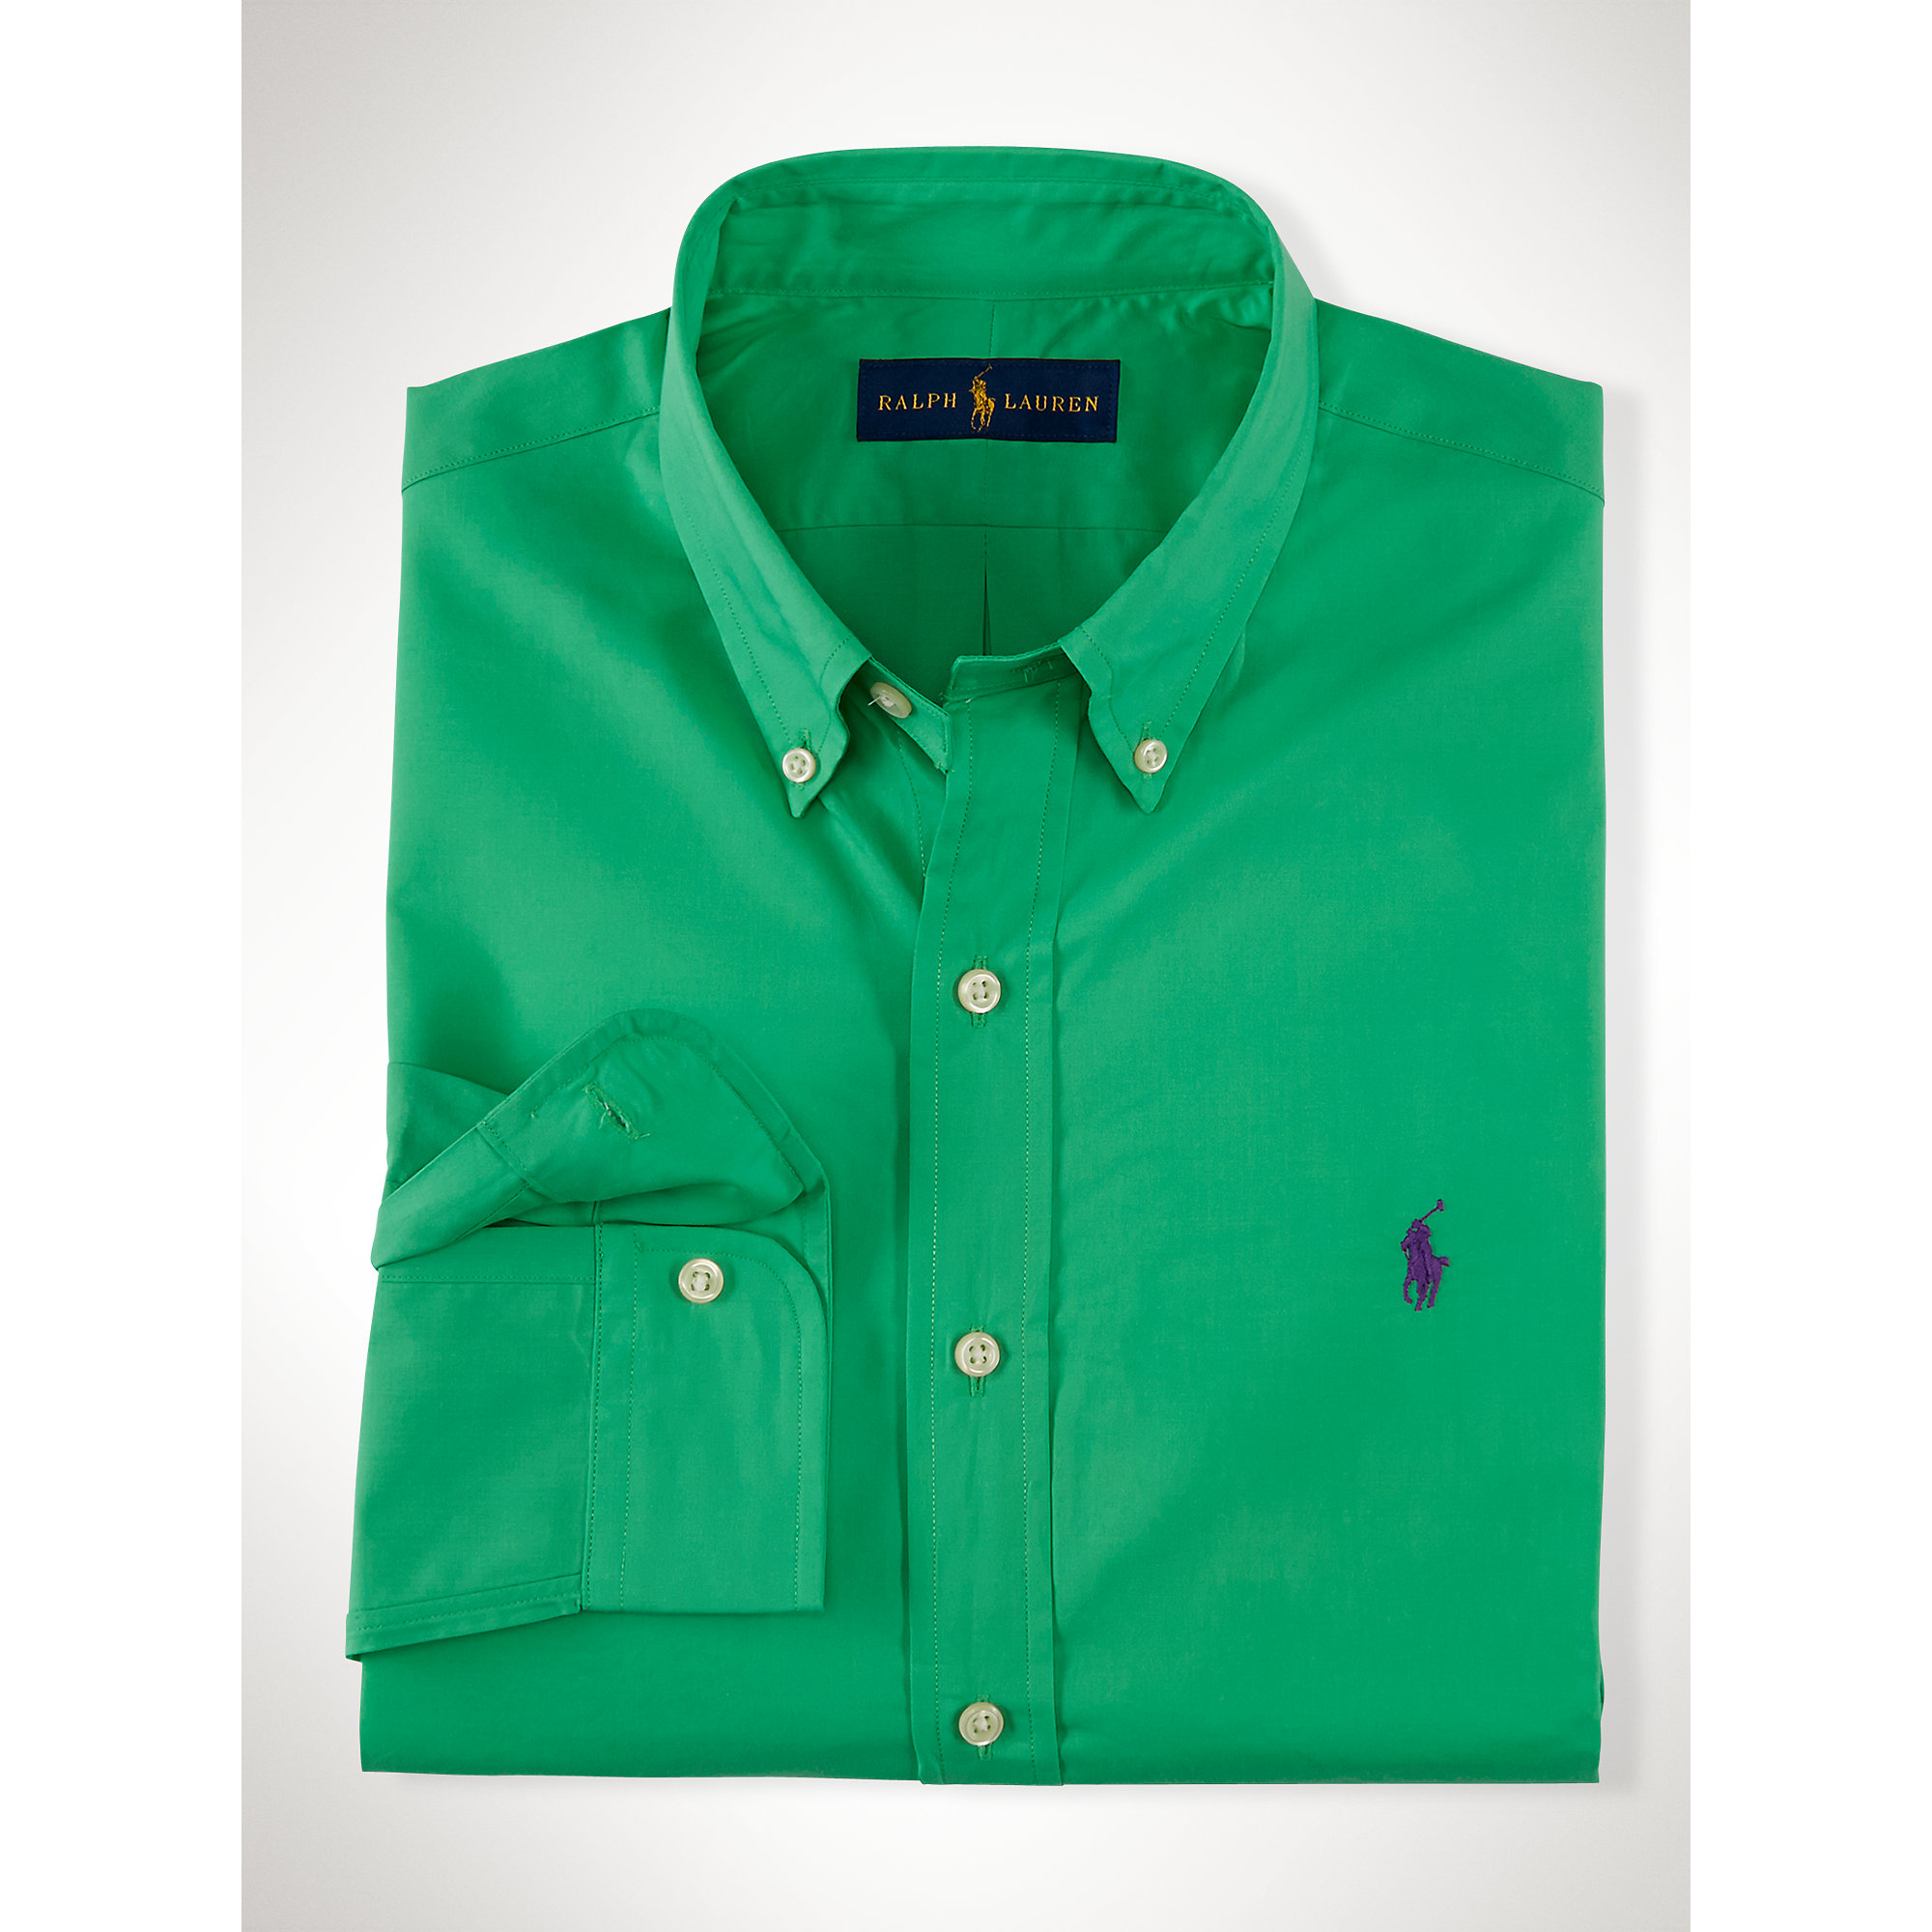 Polo ralph lauren slim fit solid poplin shirt in green for for Forest green polo shirts